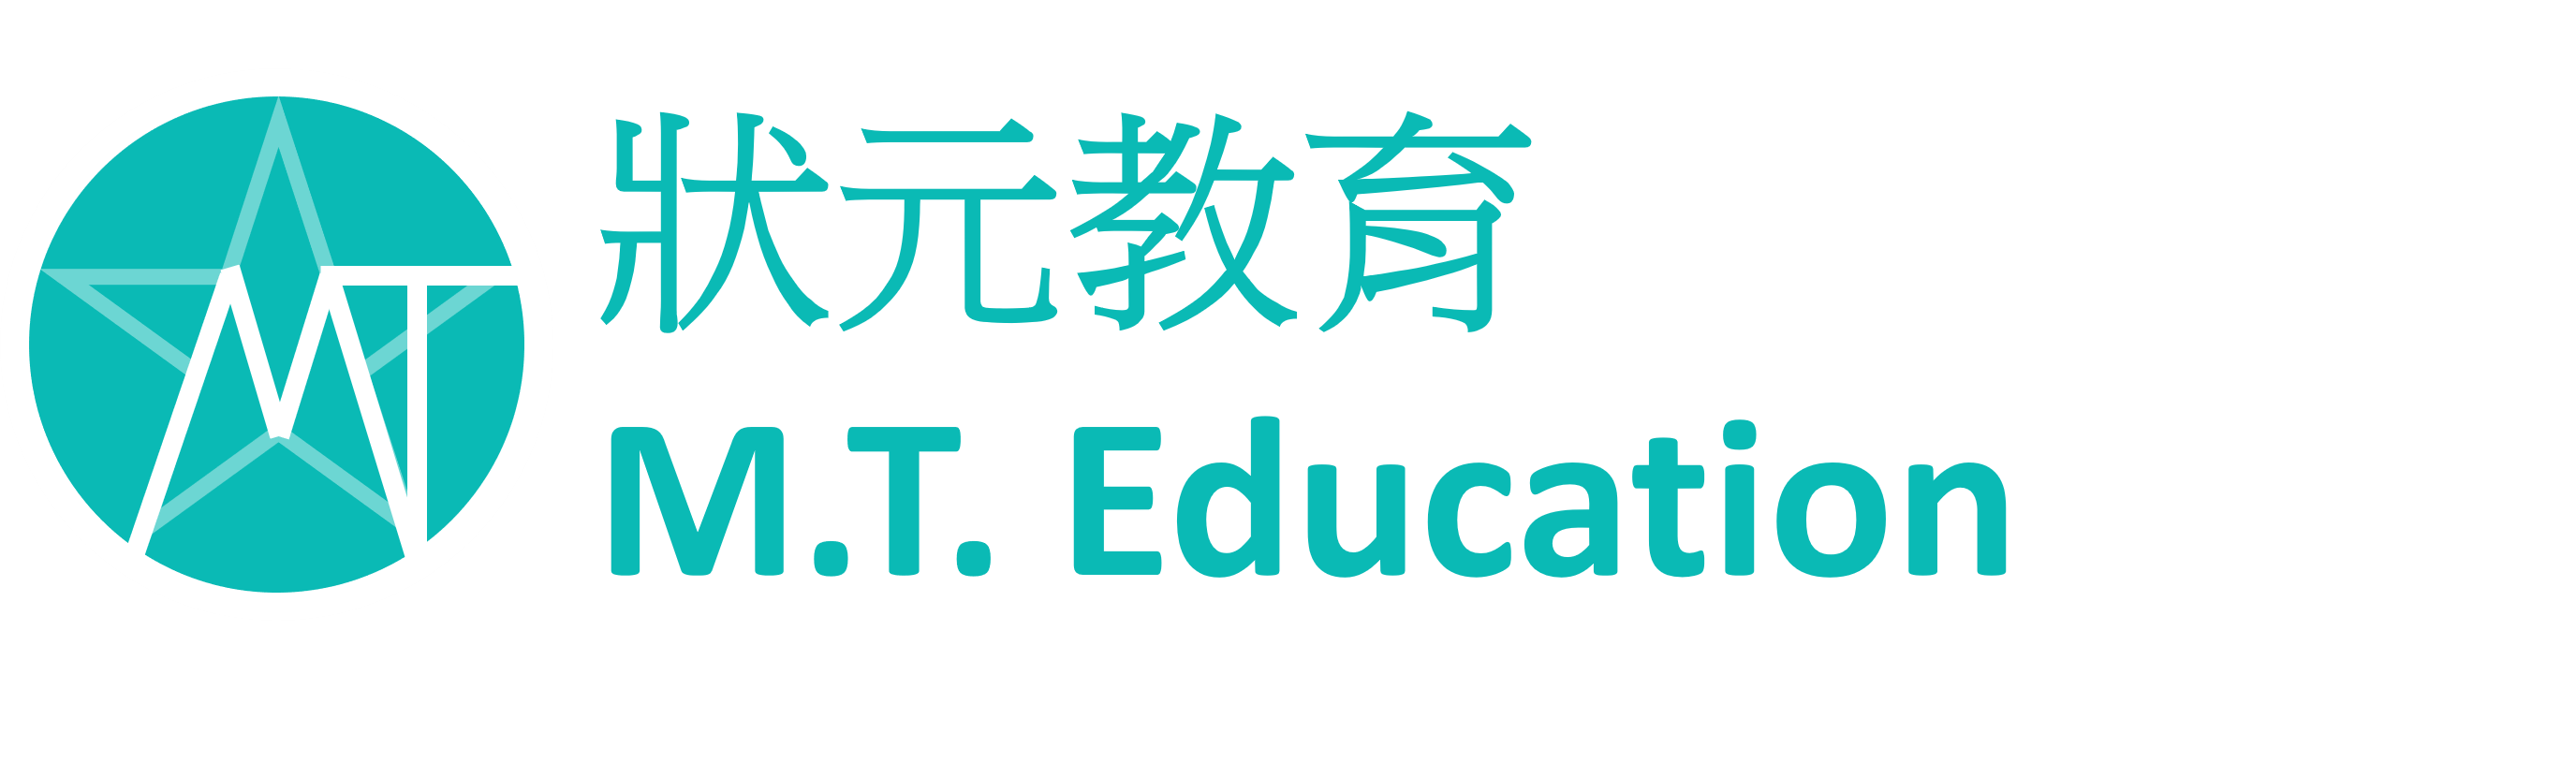 M.T. Education 狀元教育